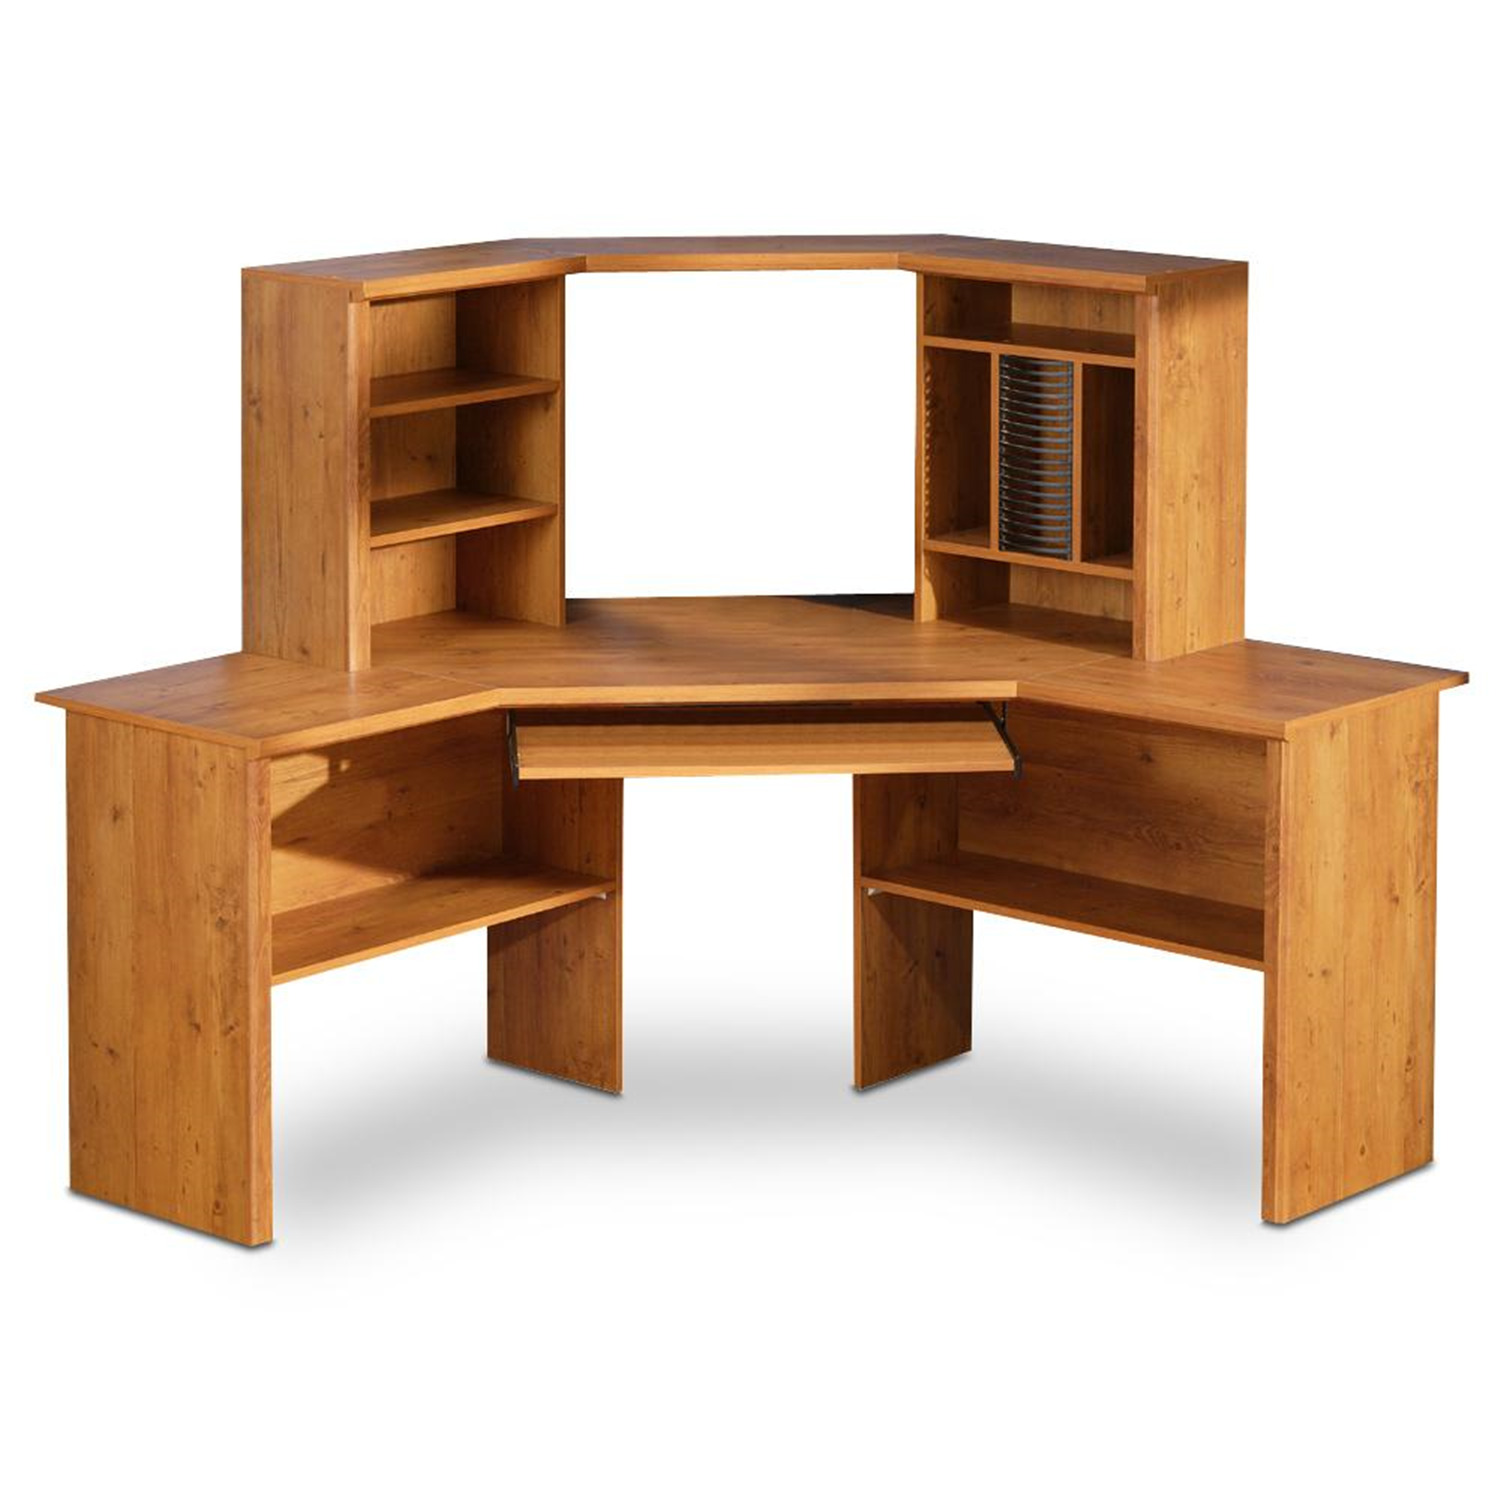 South Shore Corner Desk by OJ Commerce 7232780 40299 : 7232780jpgcornerdesk from www.ojcommerce.com size 1000 x 1000 jpeg 62kB